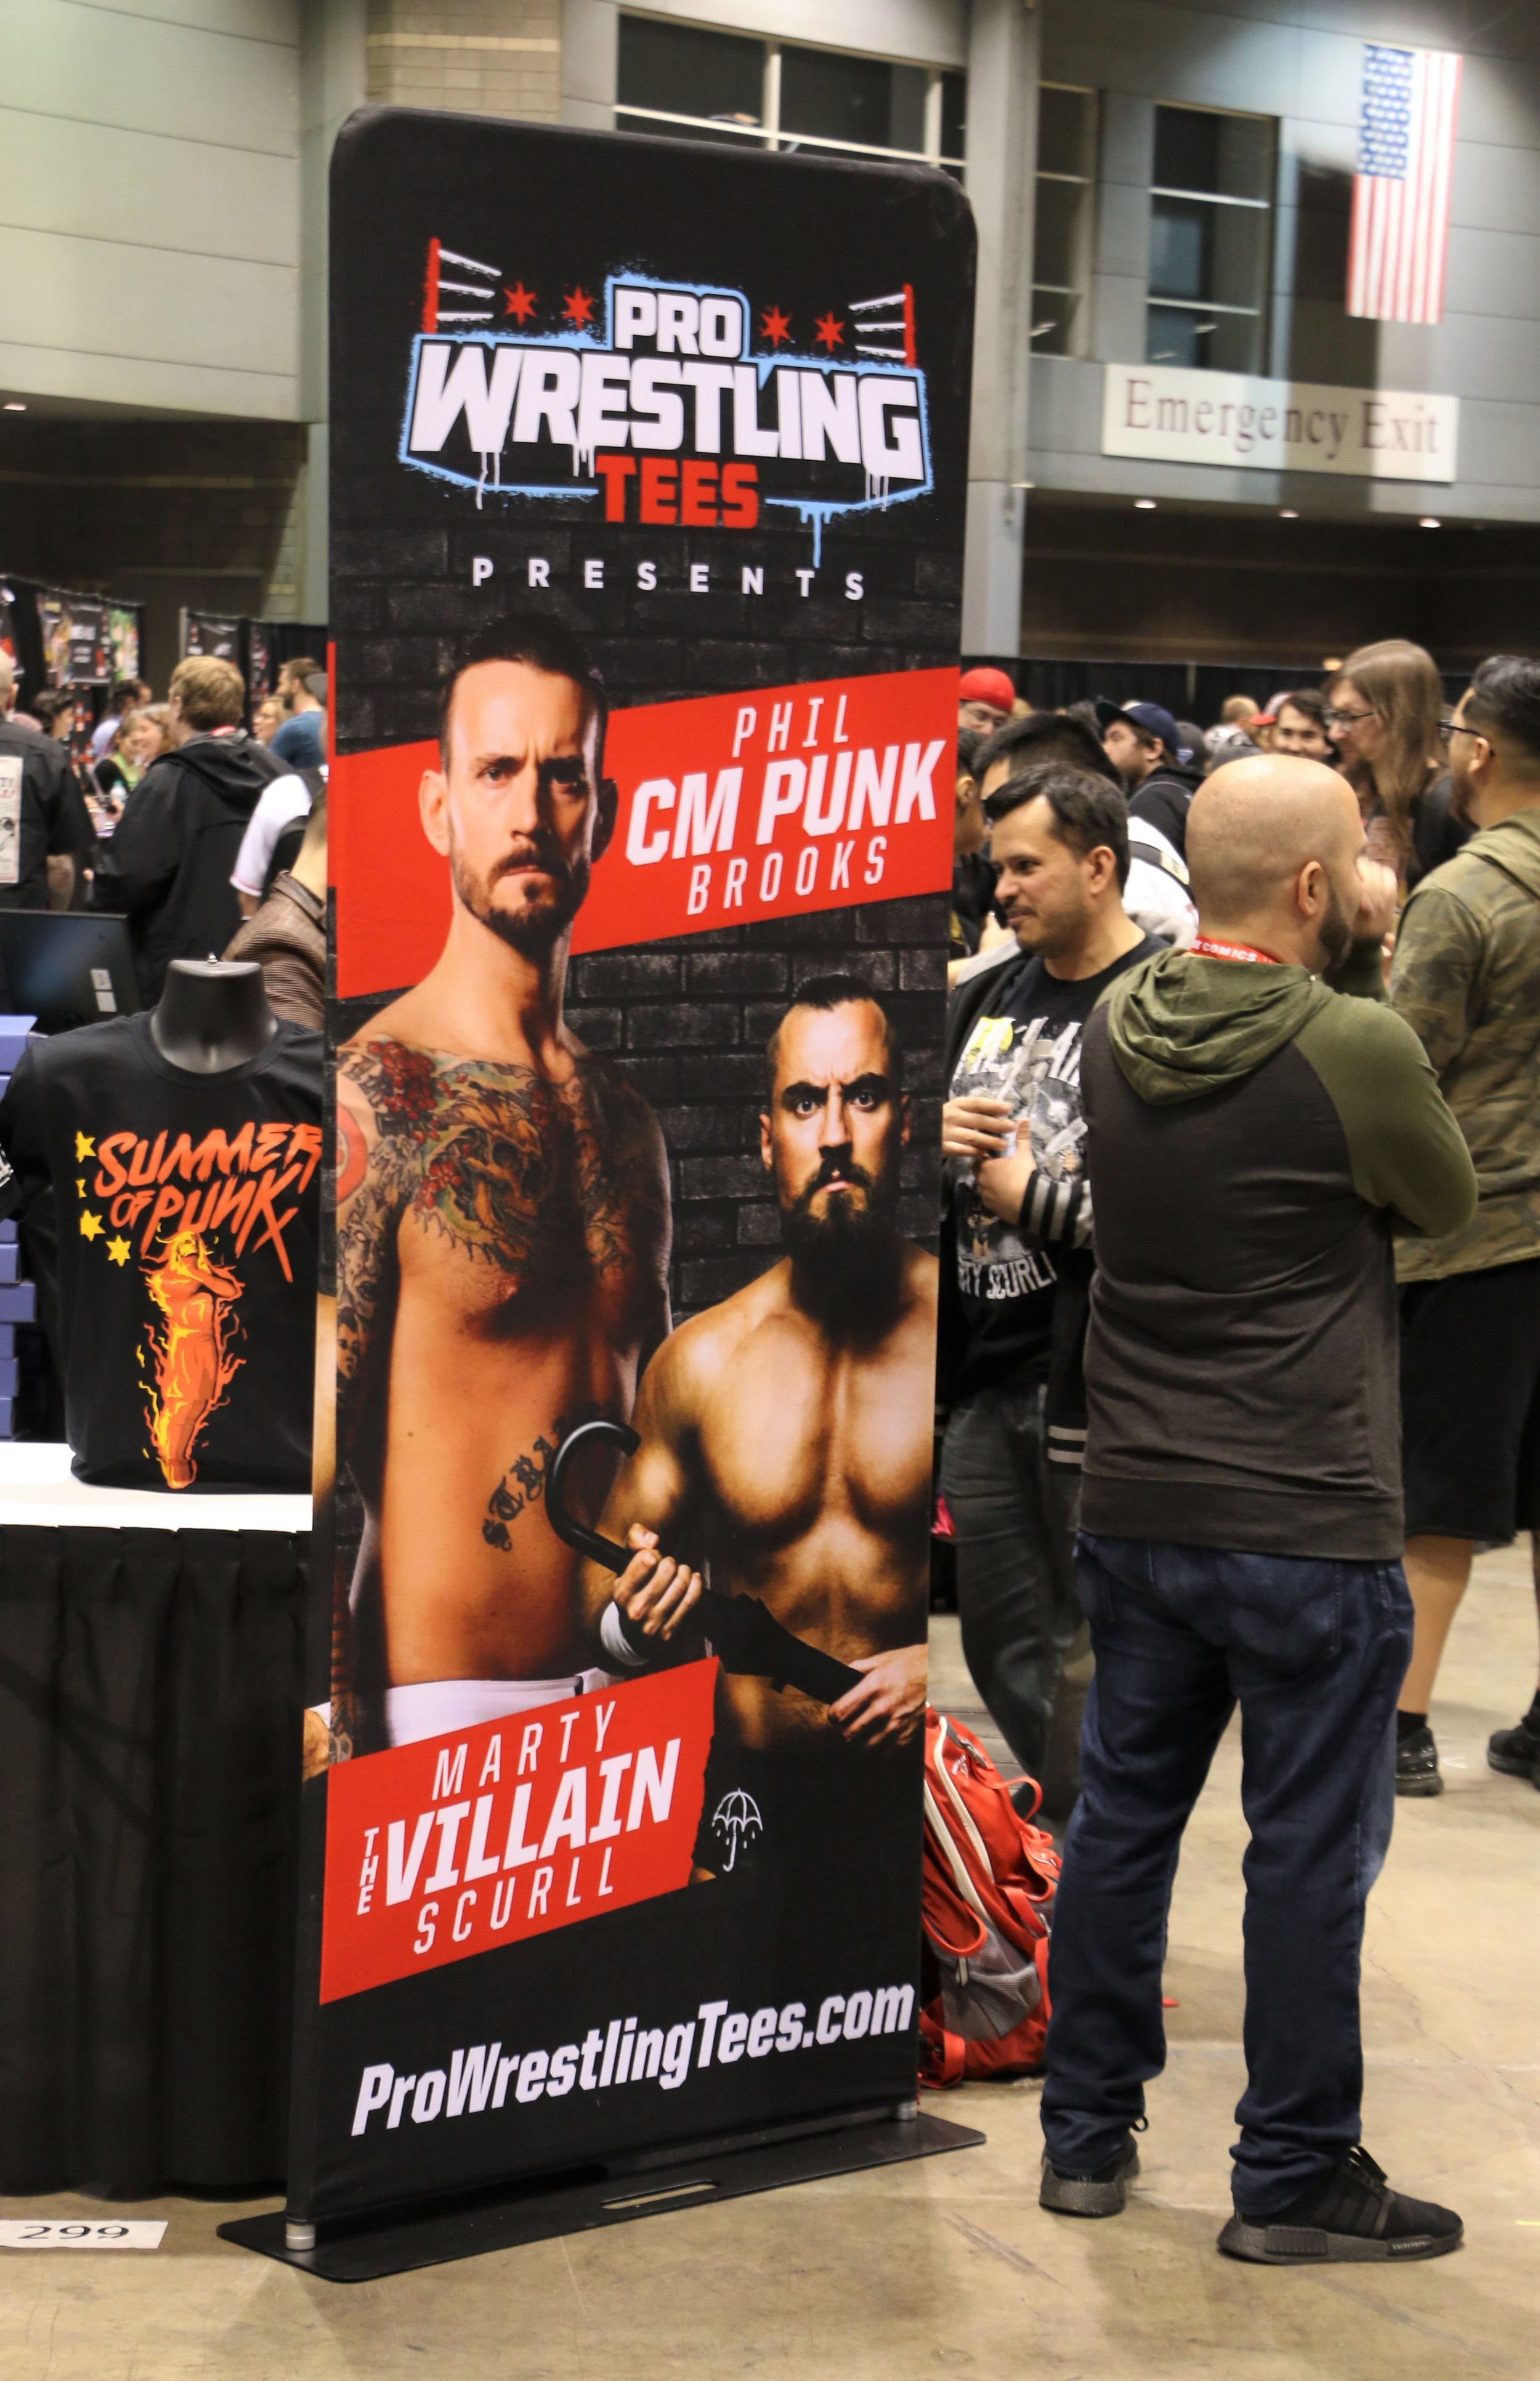 Pro Wrestling Tees brought CM Punk and Marty Scurll for meet and greets at C2E2.